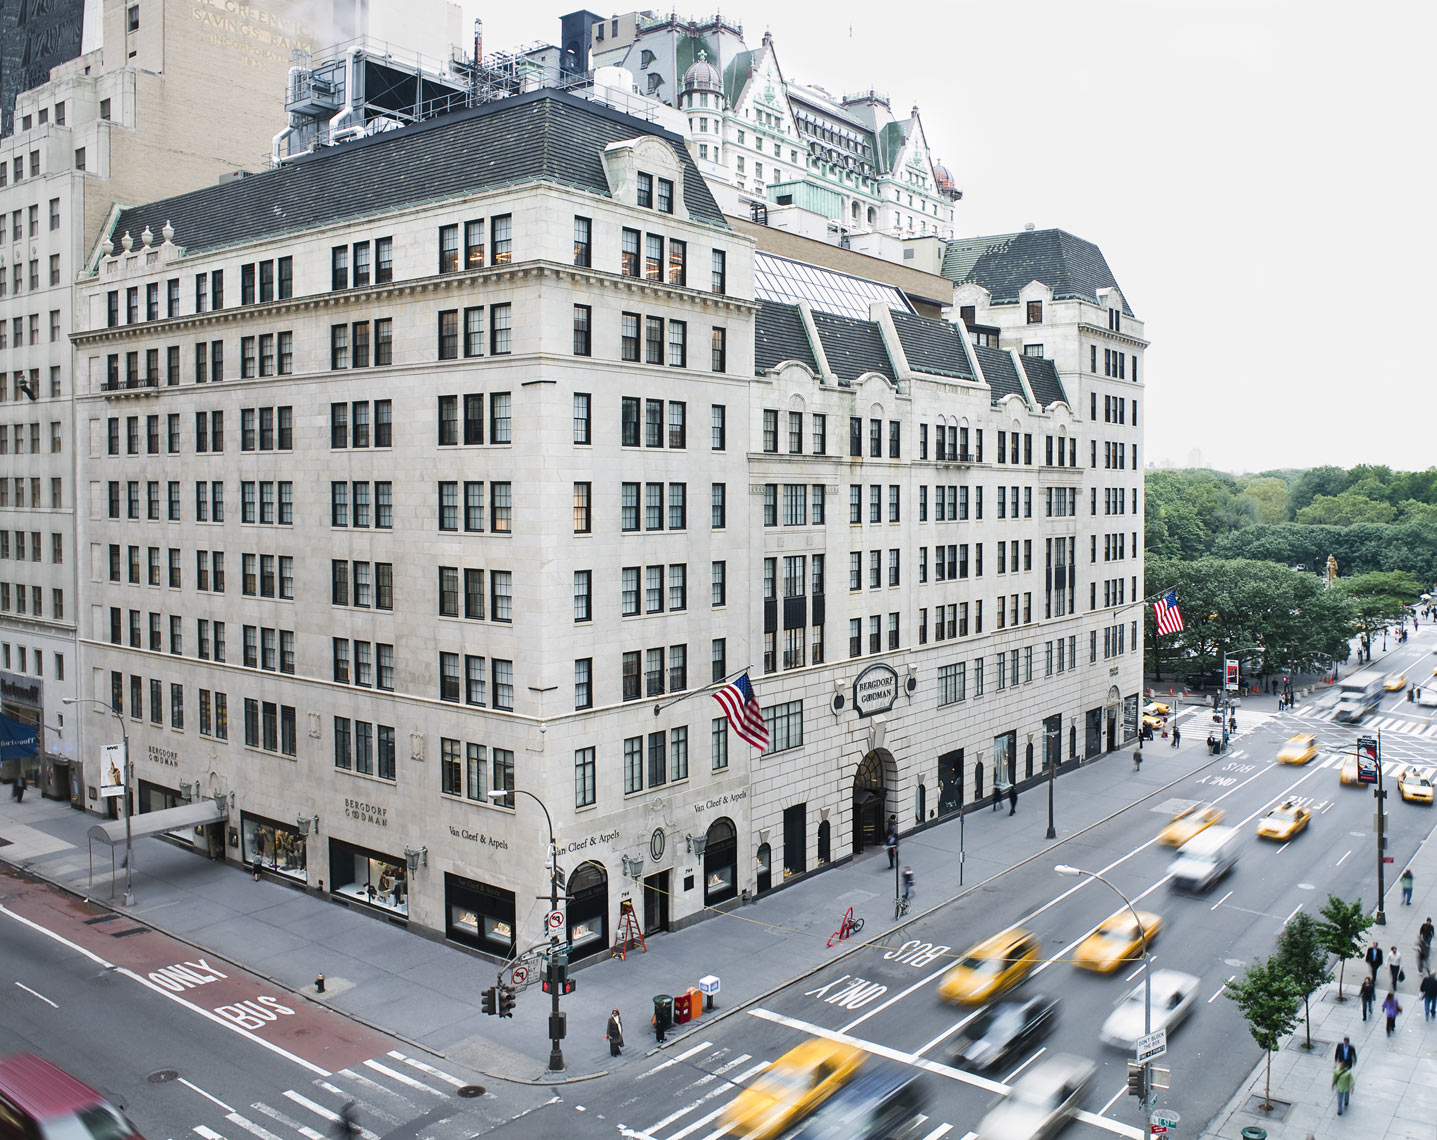 BERGDORF_GOODMAN-39-Edit-Edit_retouched_crop-copy